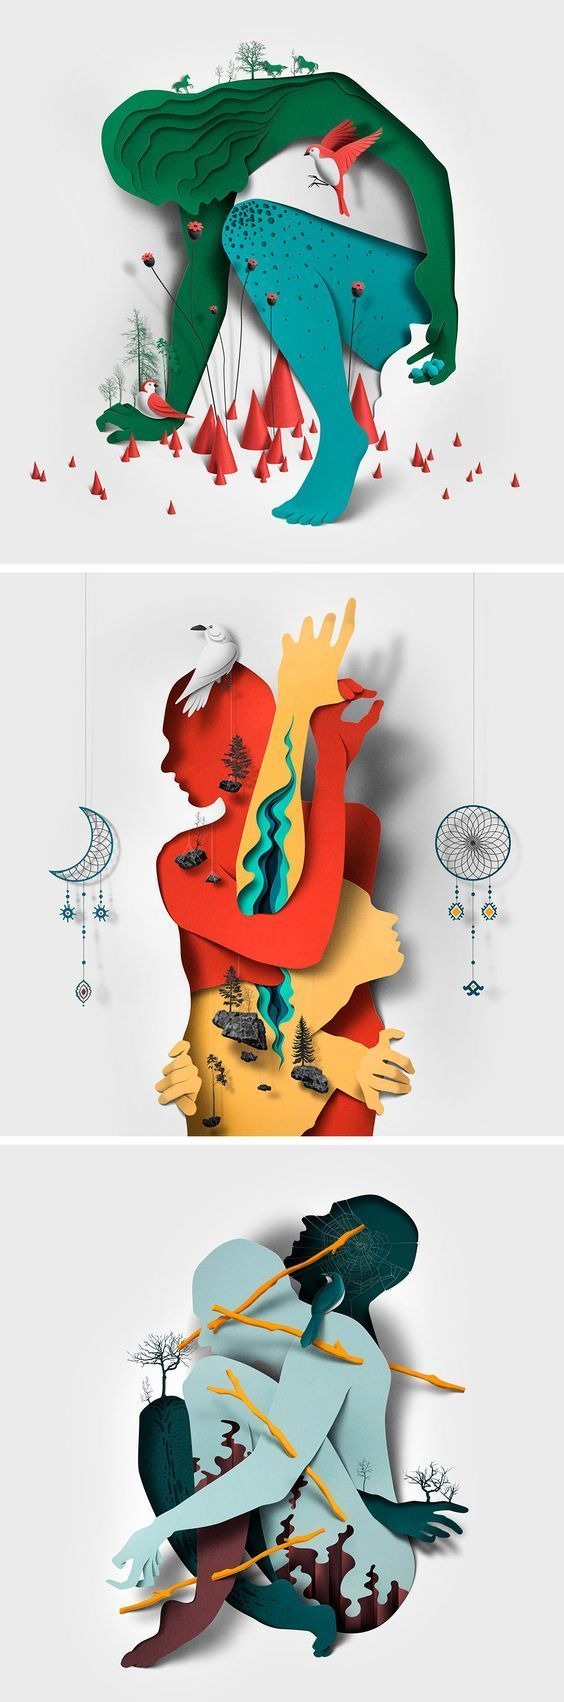 New Editorial Illustrations Incorporating Cut Paper Textures and Shadows by Eiko Ojala: